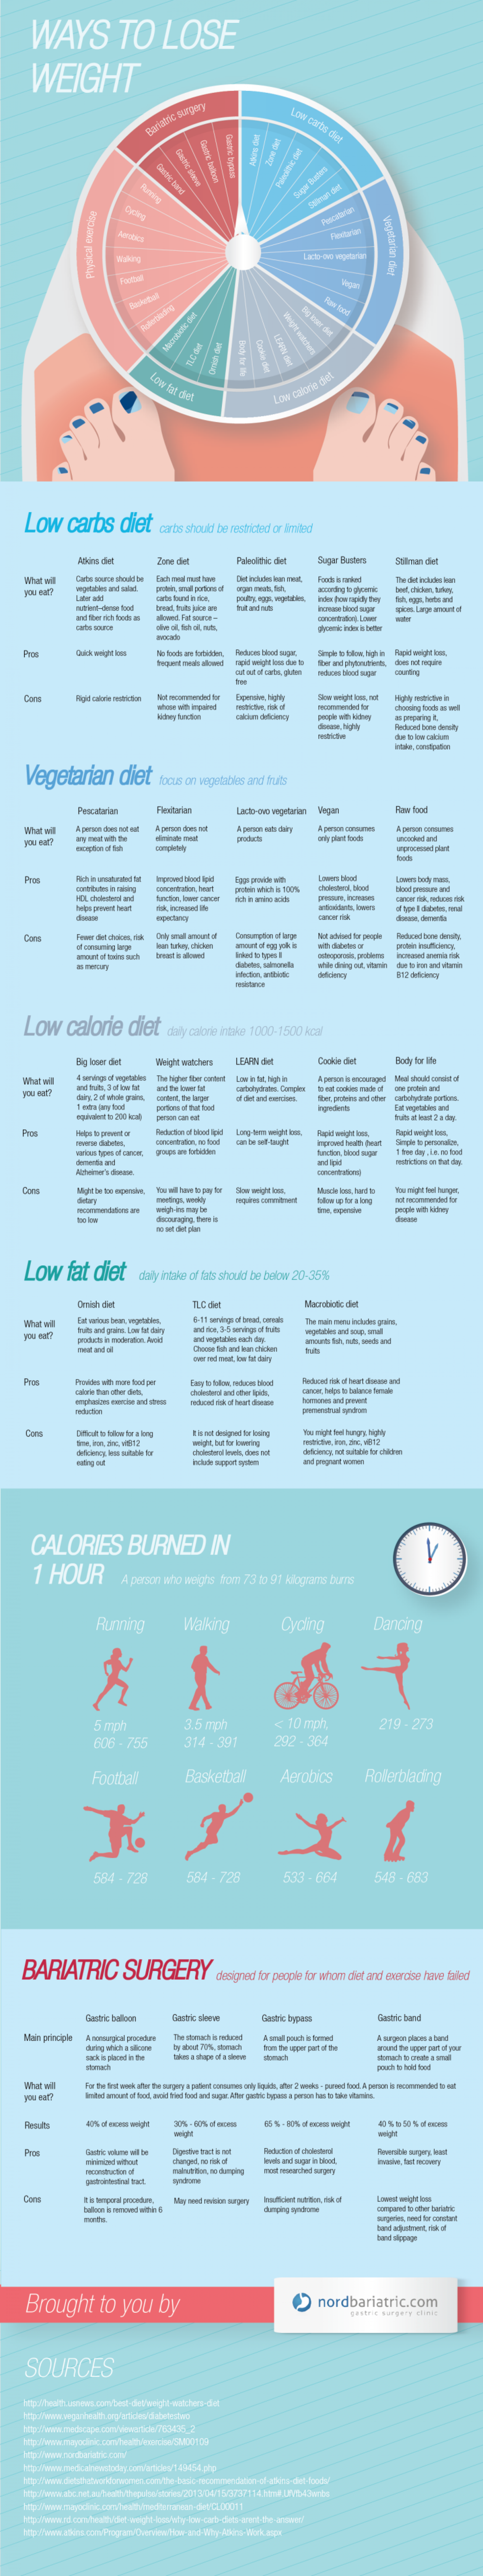 Ways to lose weight Infographic